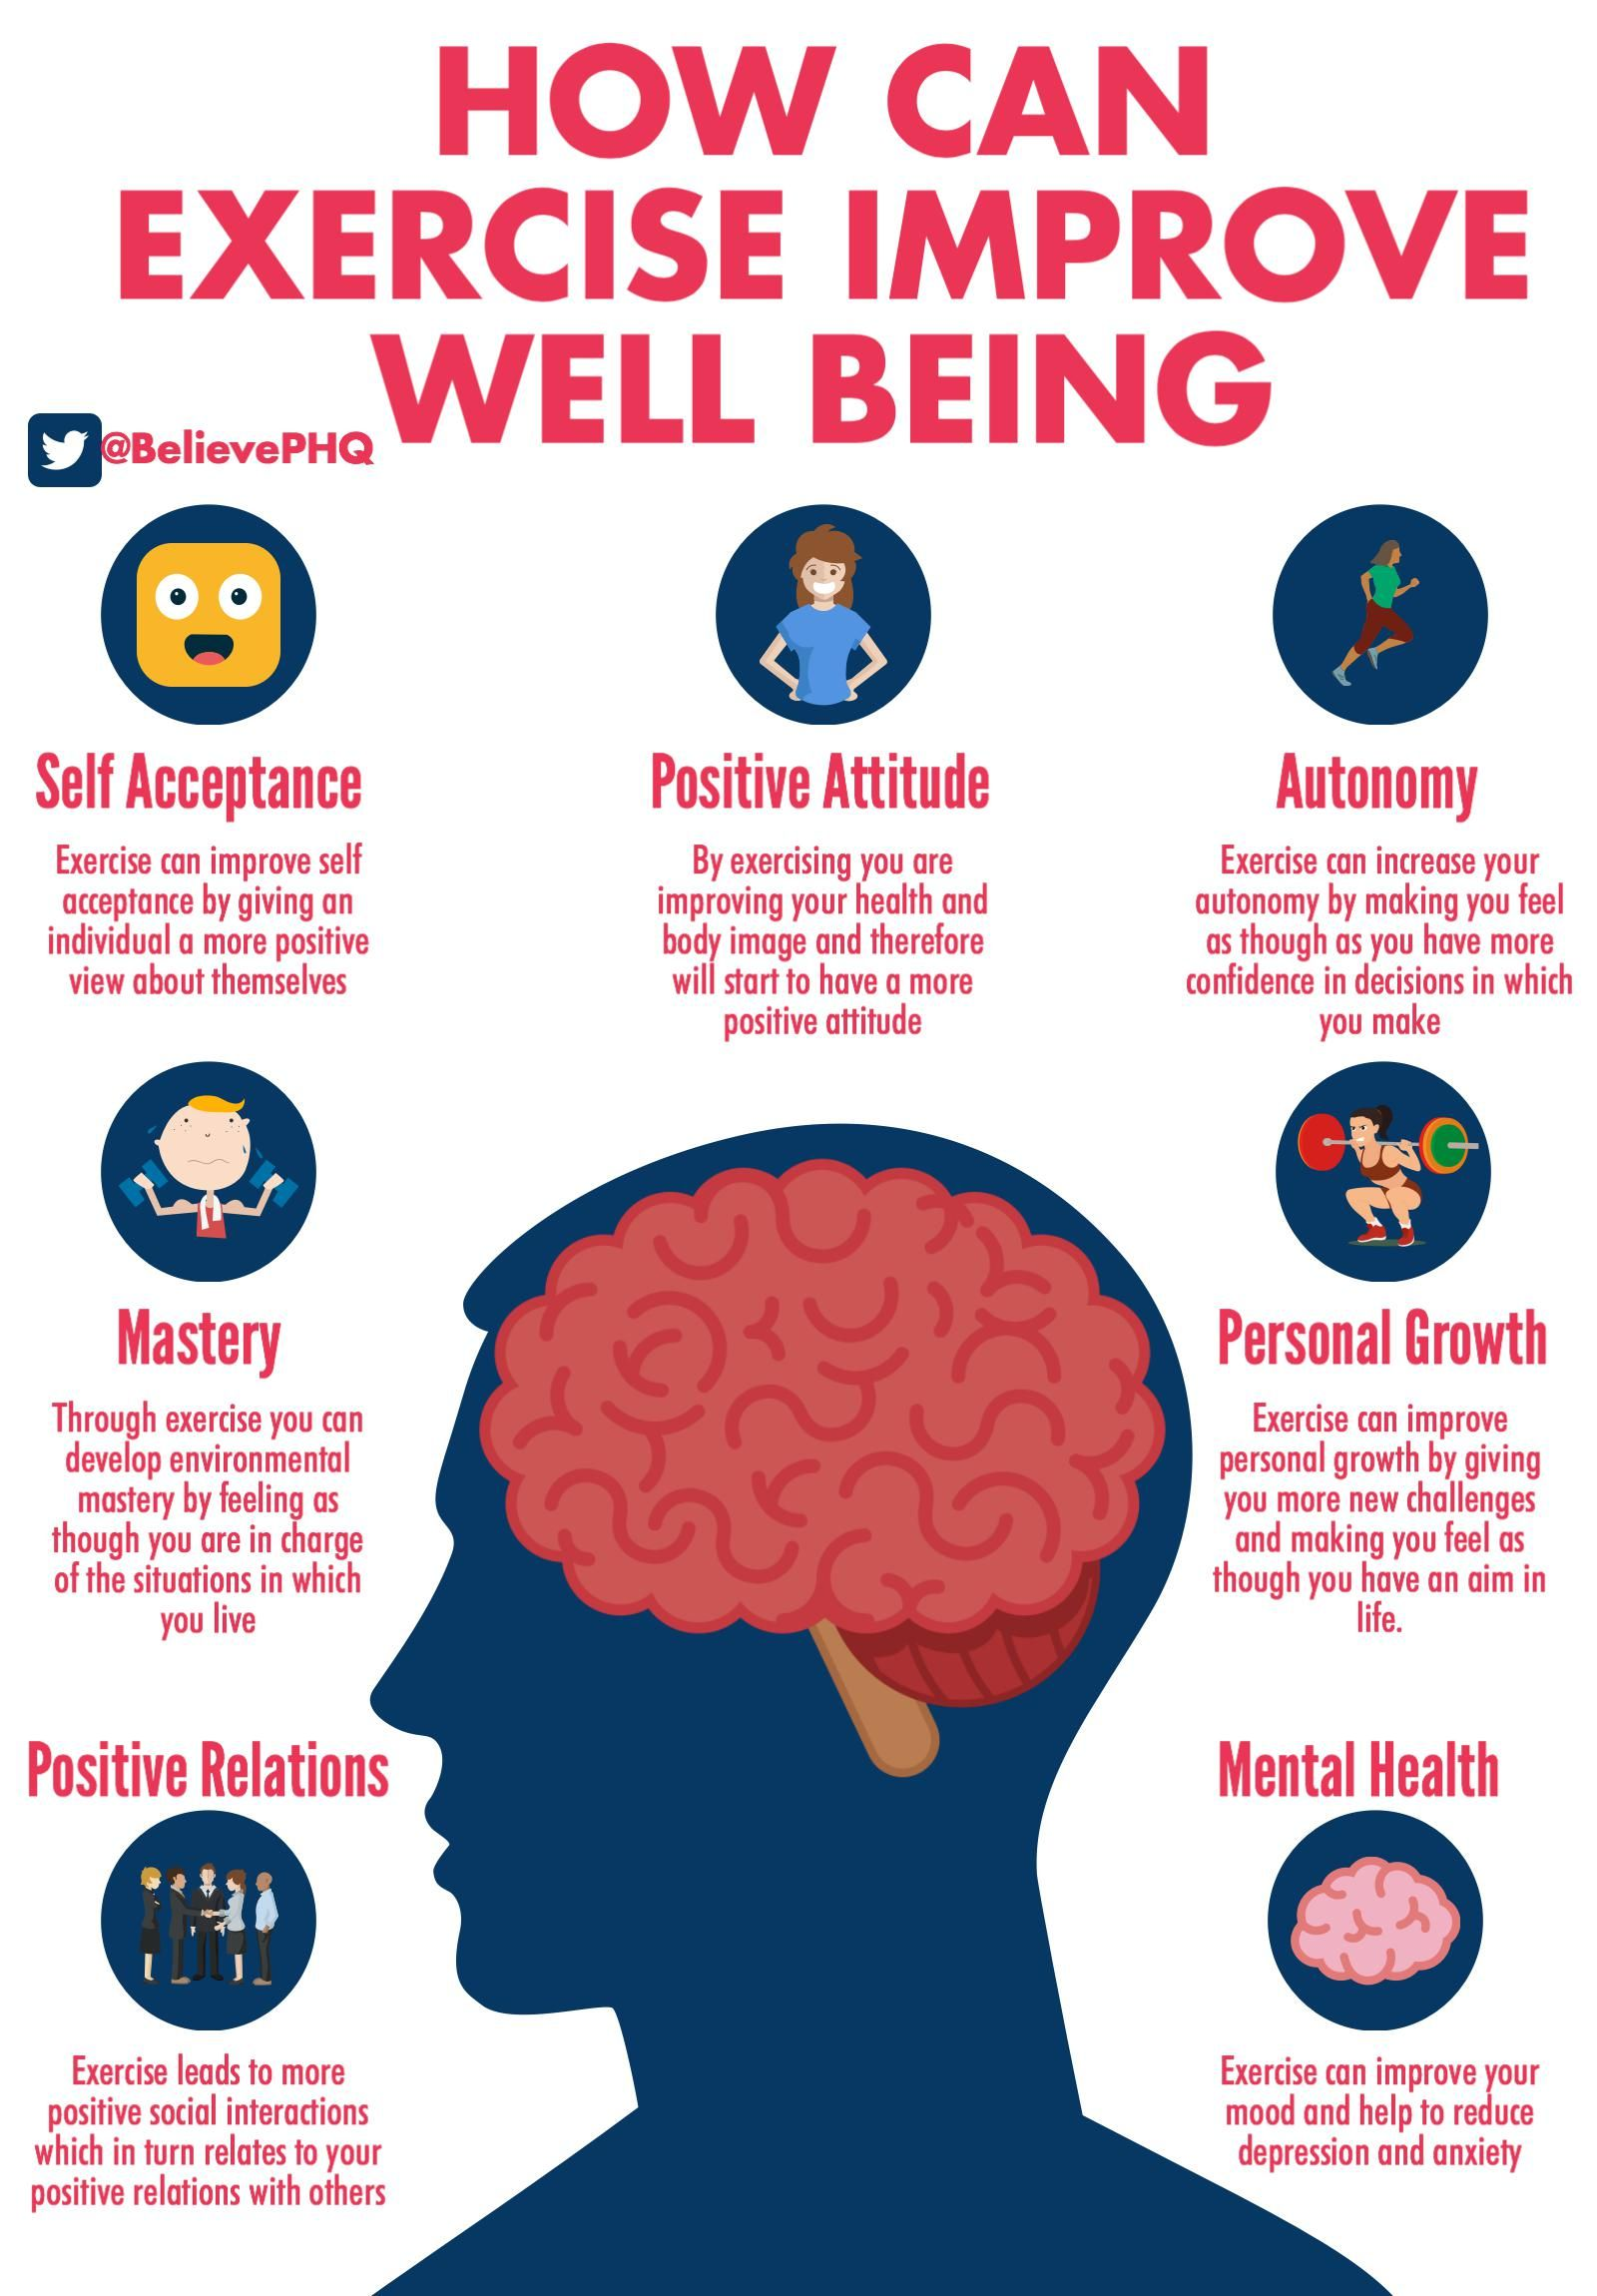 How can exercise improve well being Exercise, Positive